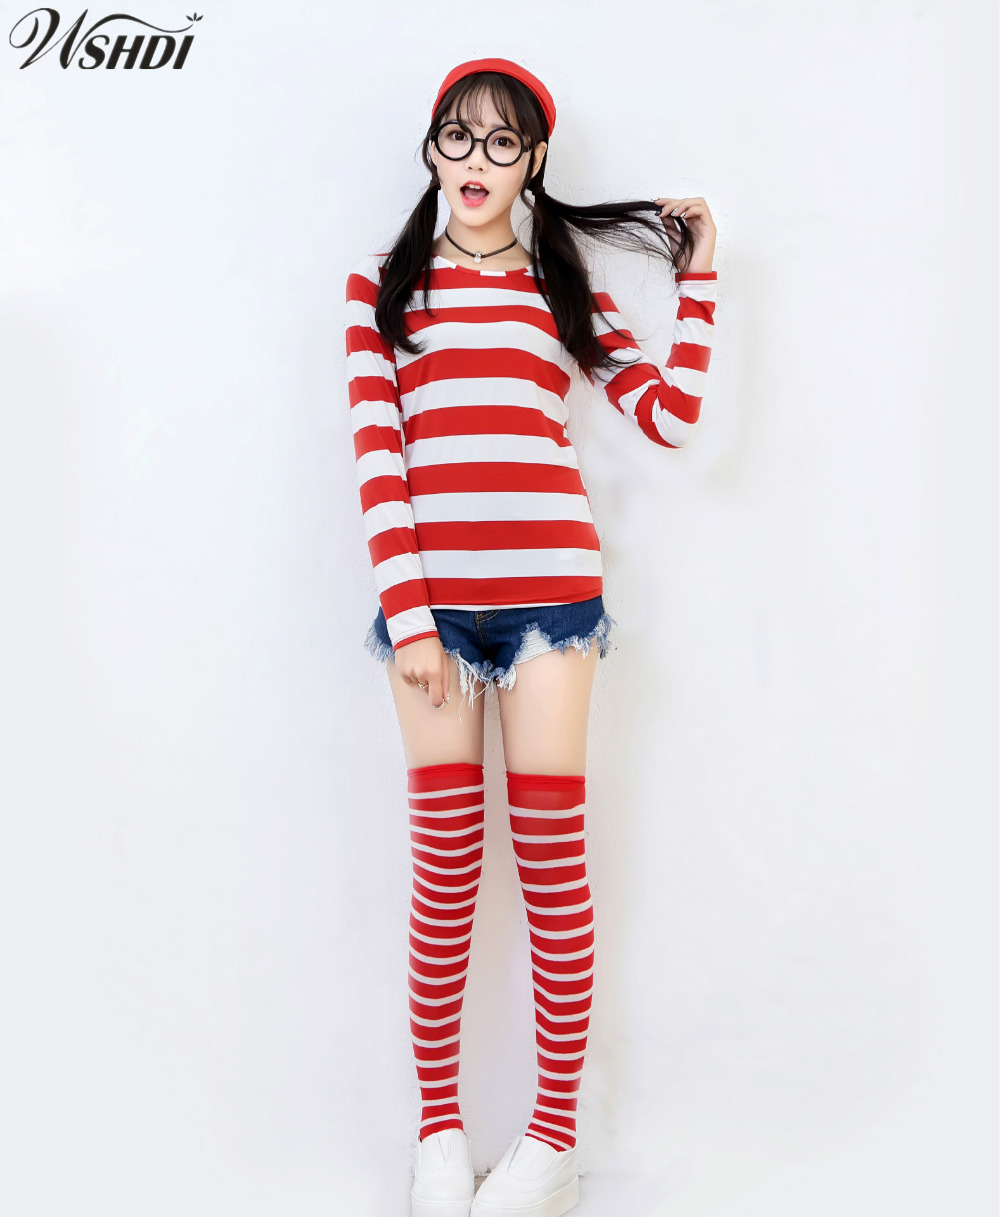 Analytical Where's Wally Waldo Tv Cartoon Stag Night Outfit Adult Womens Fancy Dress Costumes Halloween Shirt +hat +glasses +stockings